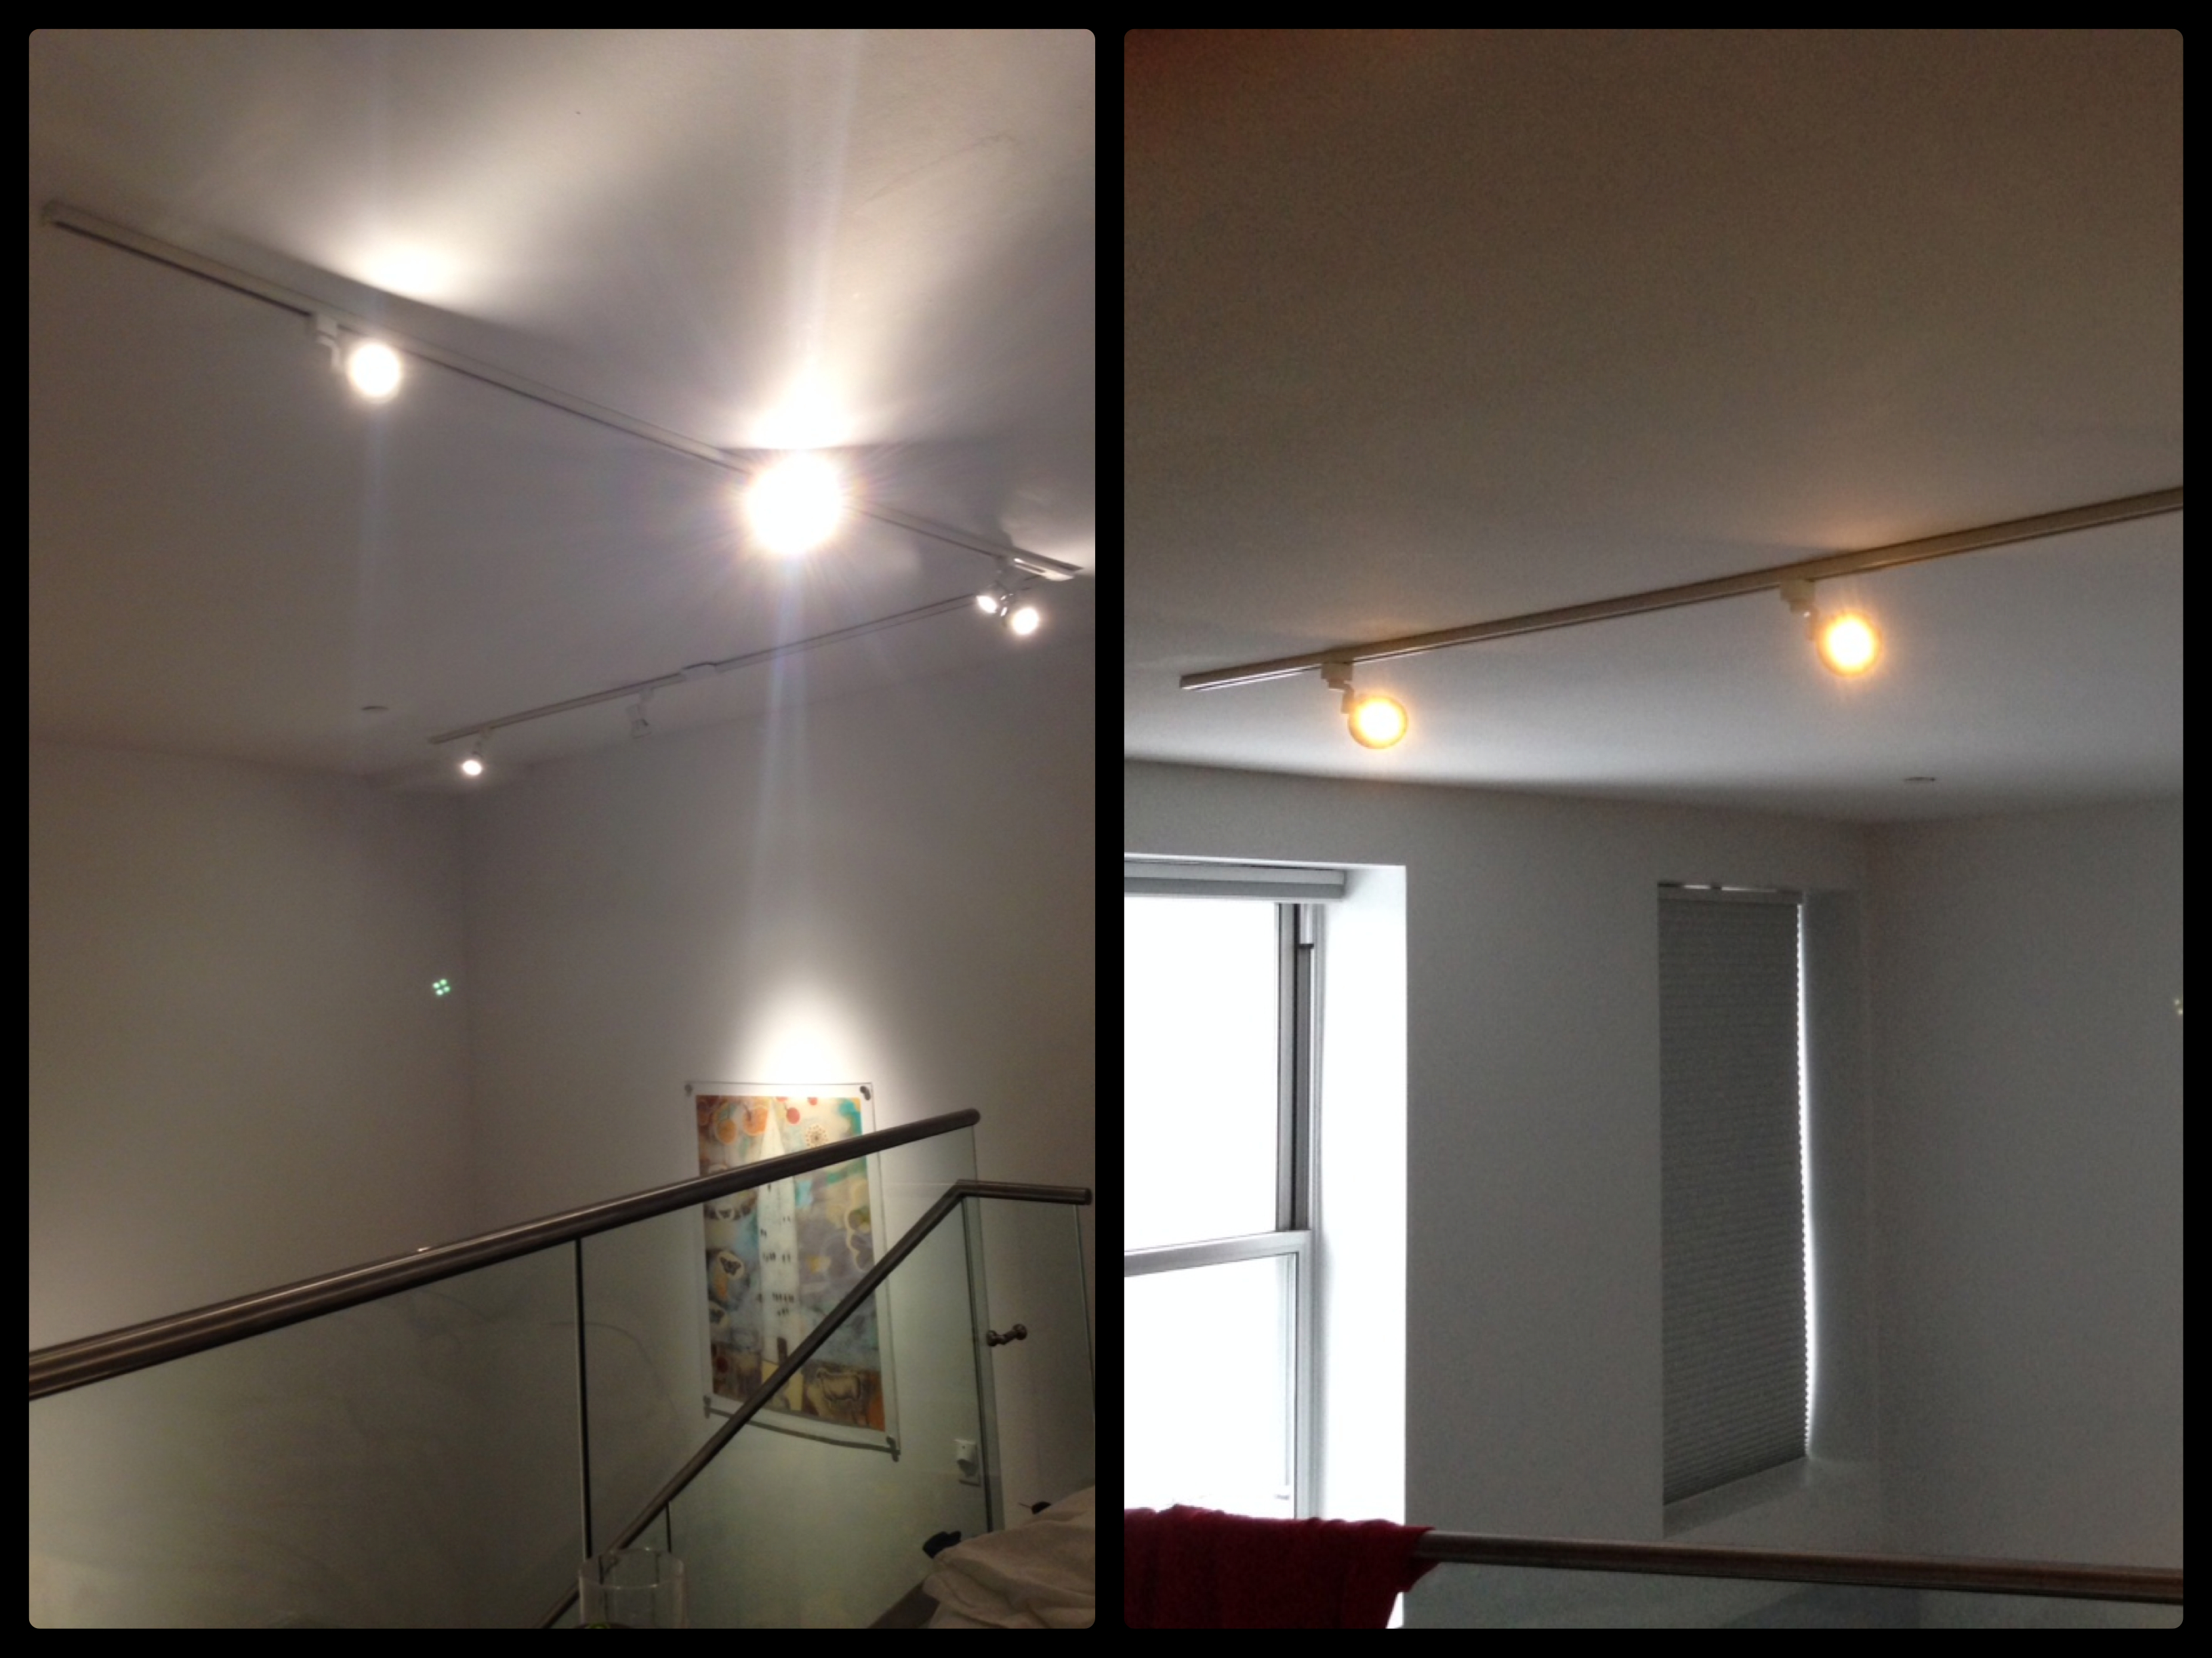 Electrical Wiring, Track-light & Dimmer Installation on 25' High Ceilings – Williamsburg